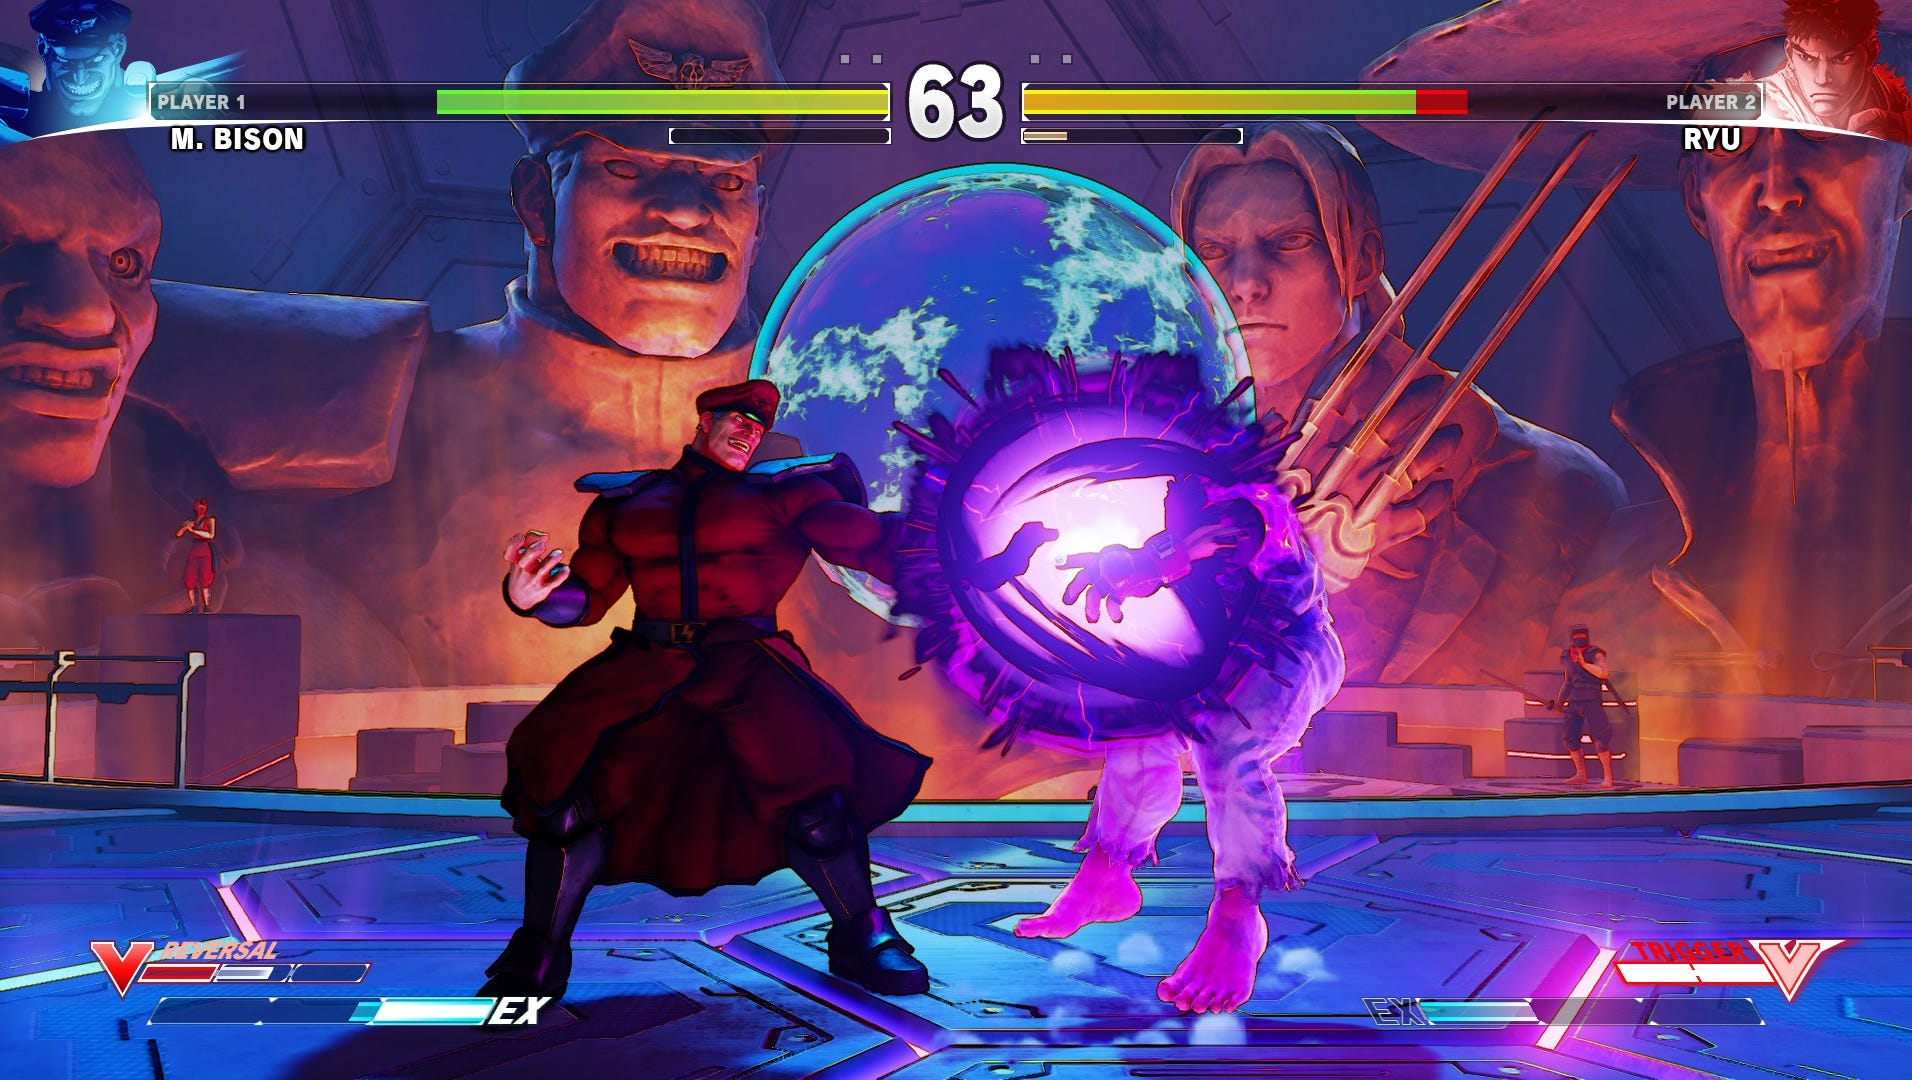 5 Things I Learned Playing Street Fighter V